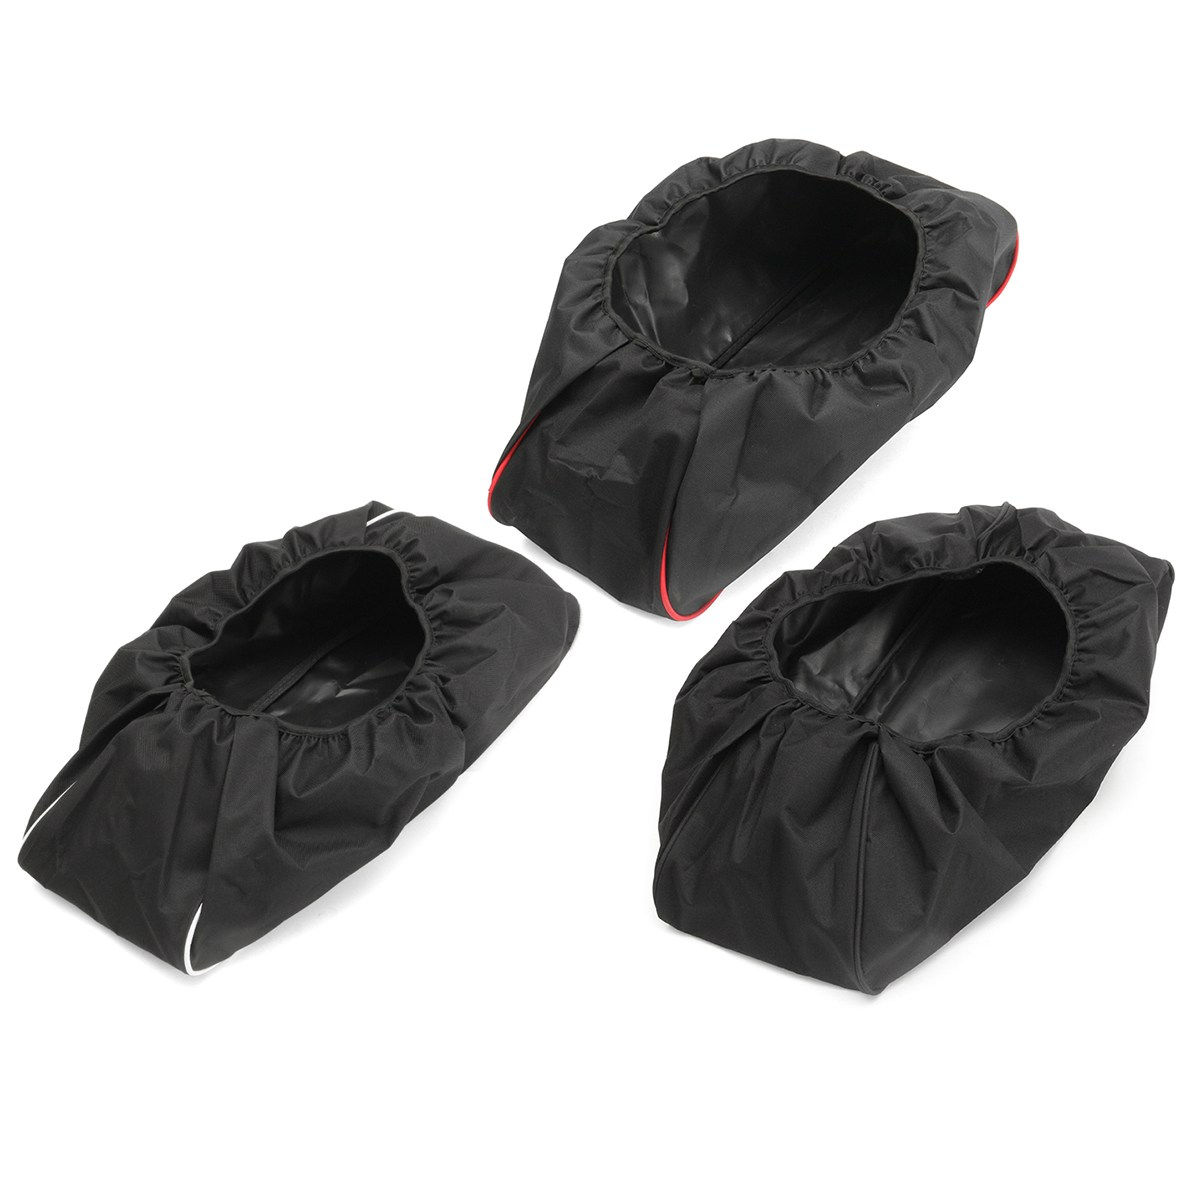 Black/White/Red 600D Waterproof Car Cover Soft Winch Dust Cover 8,000-17,500 lbs Trailer SUVs Nylon Oxford 56*24*18cm